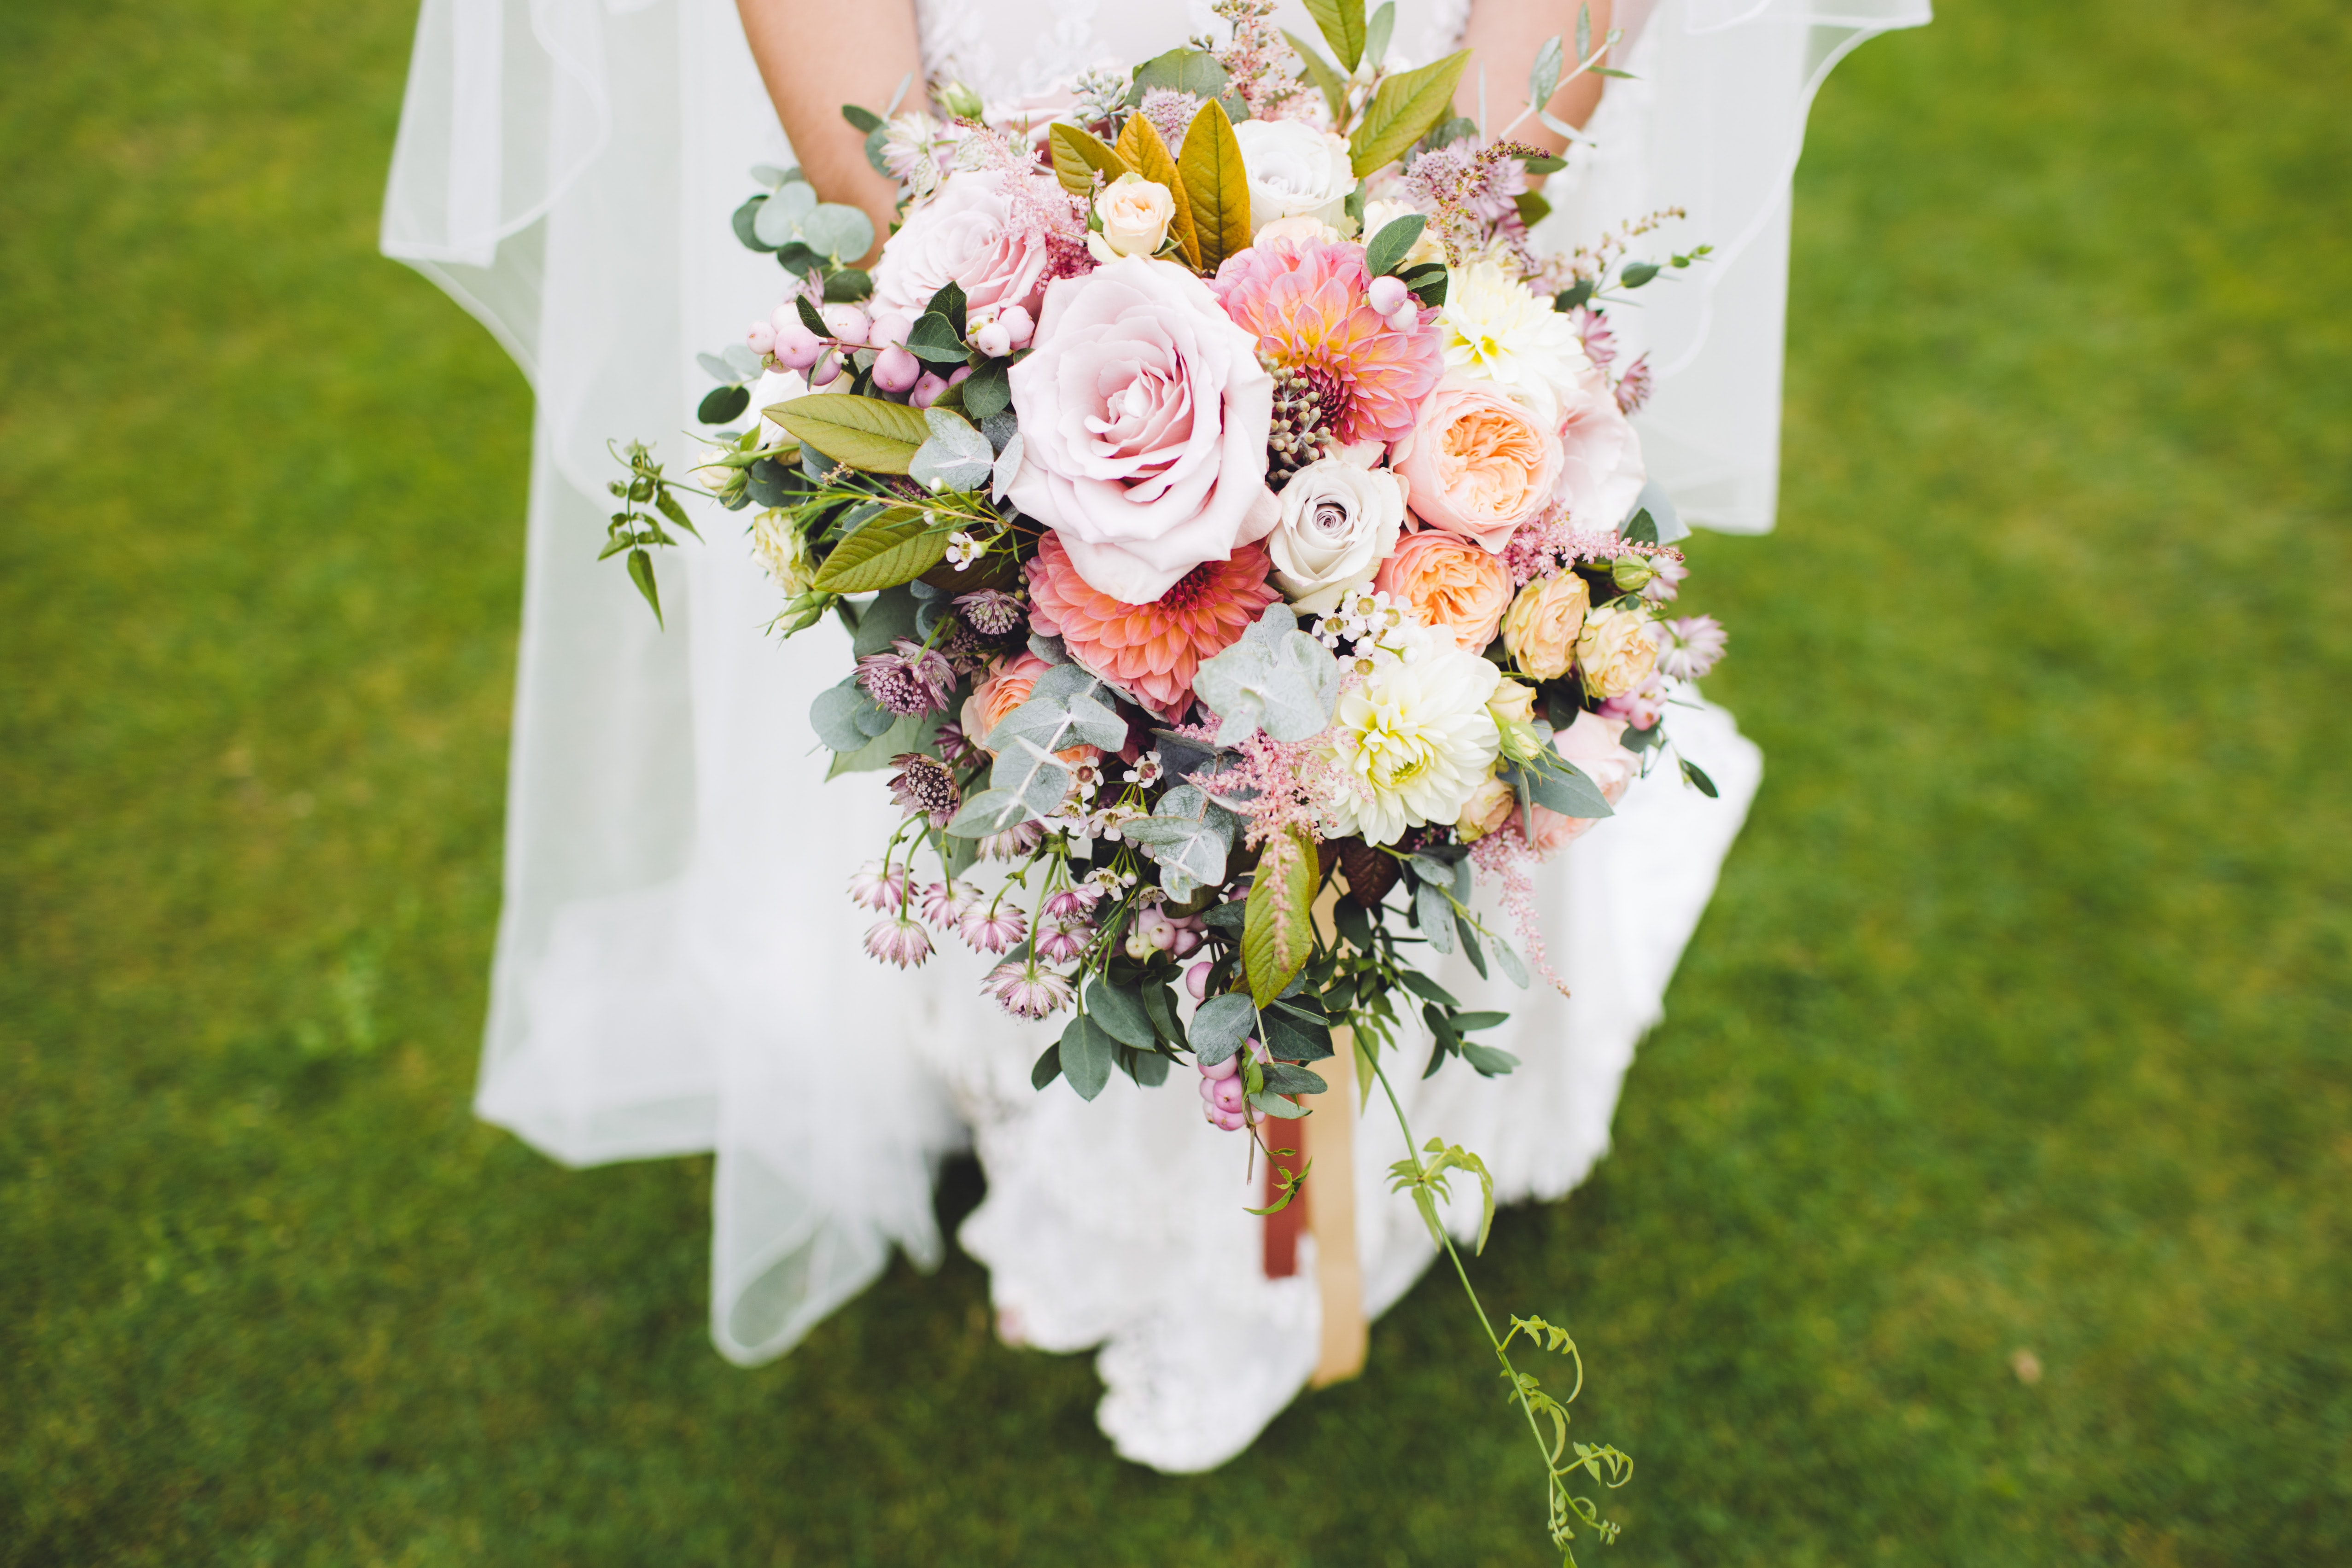 newlywed woman holding bouquet standing on green grass